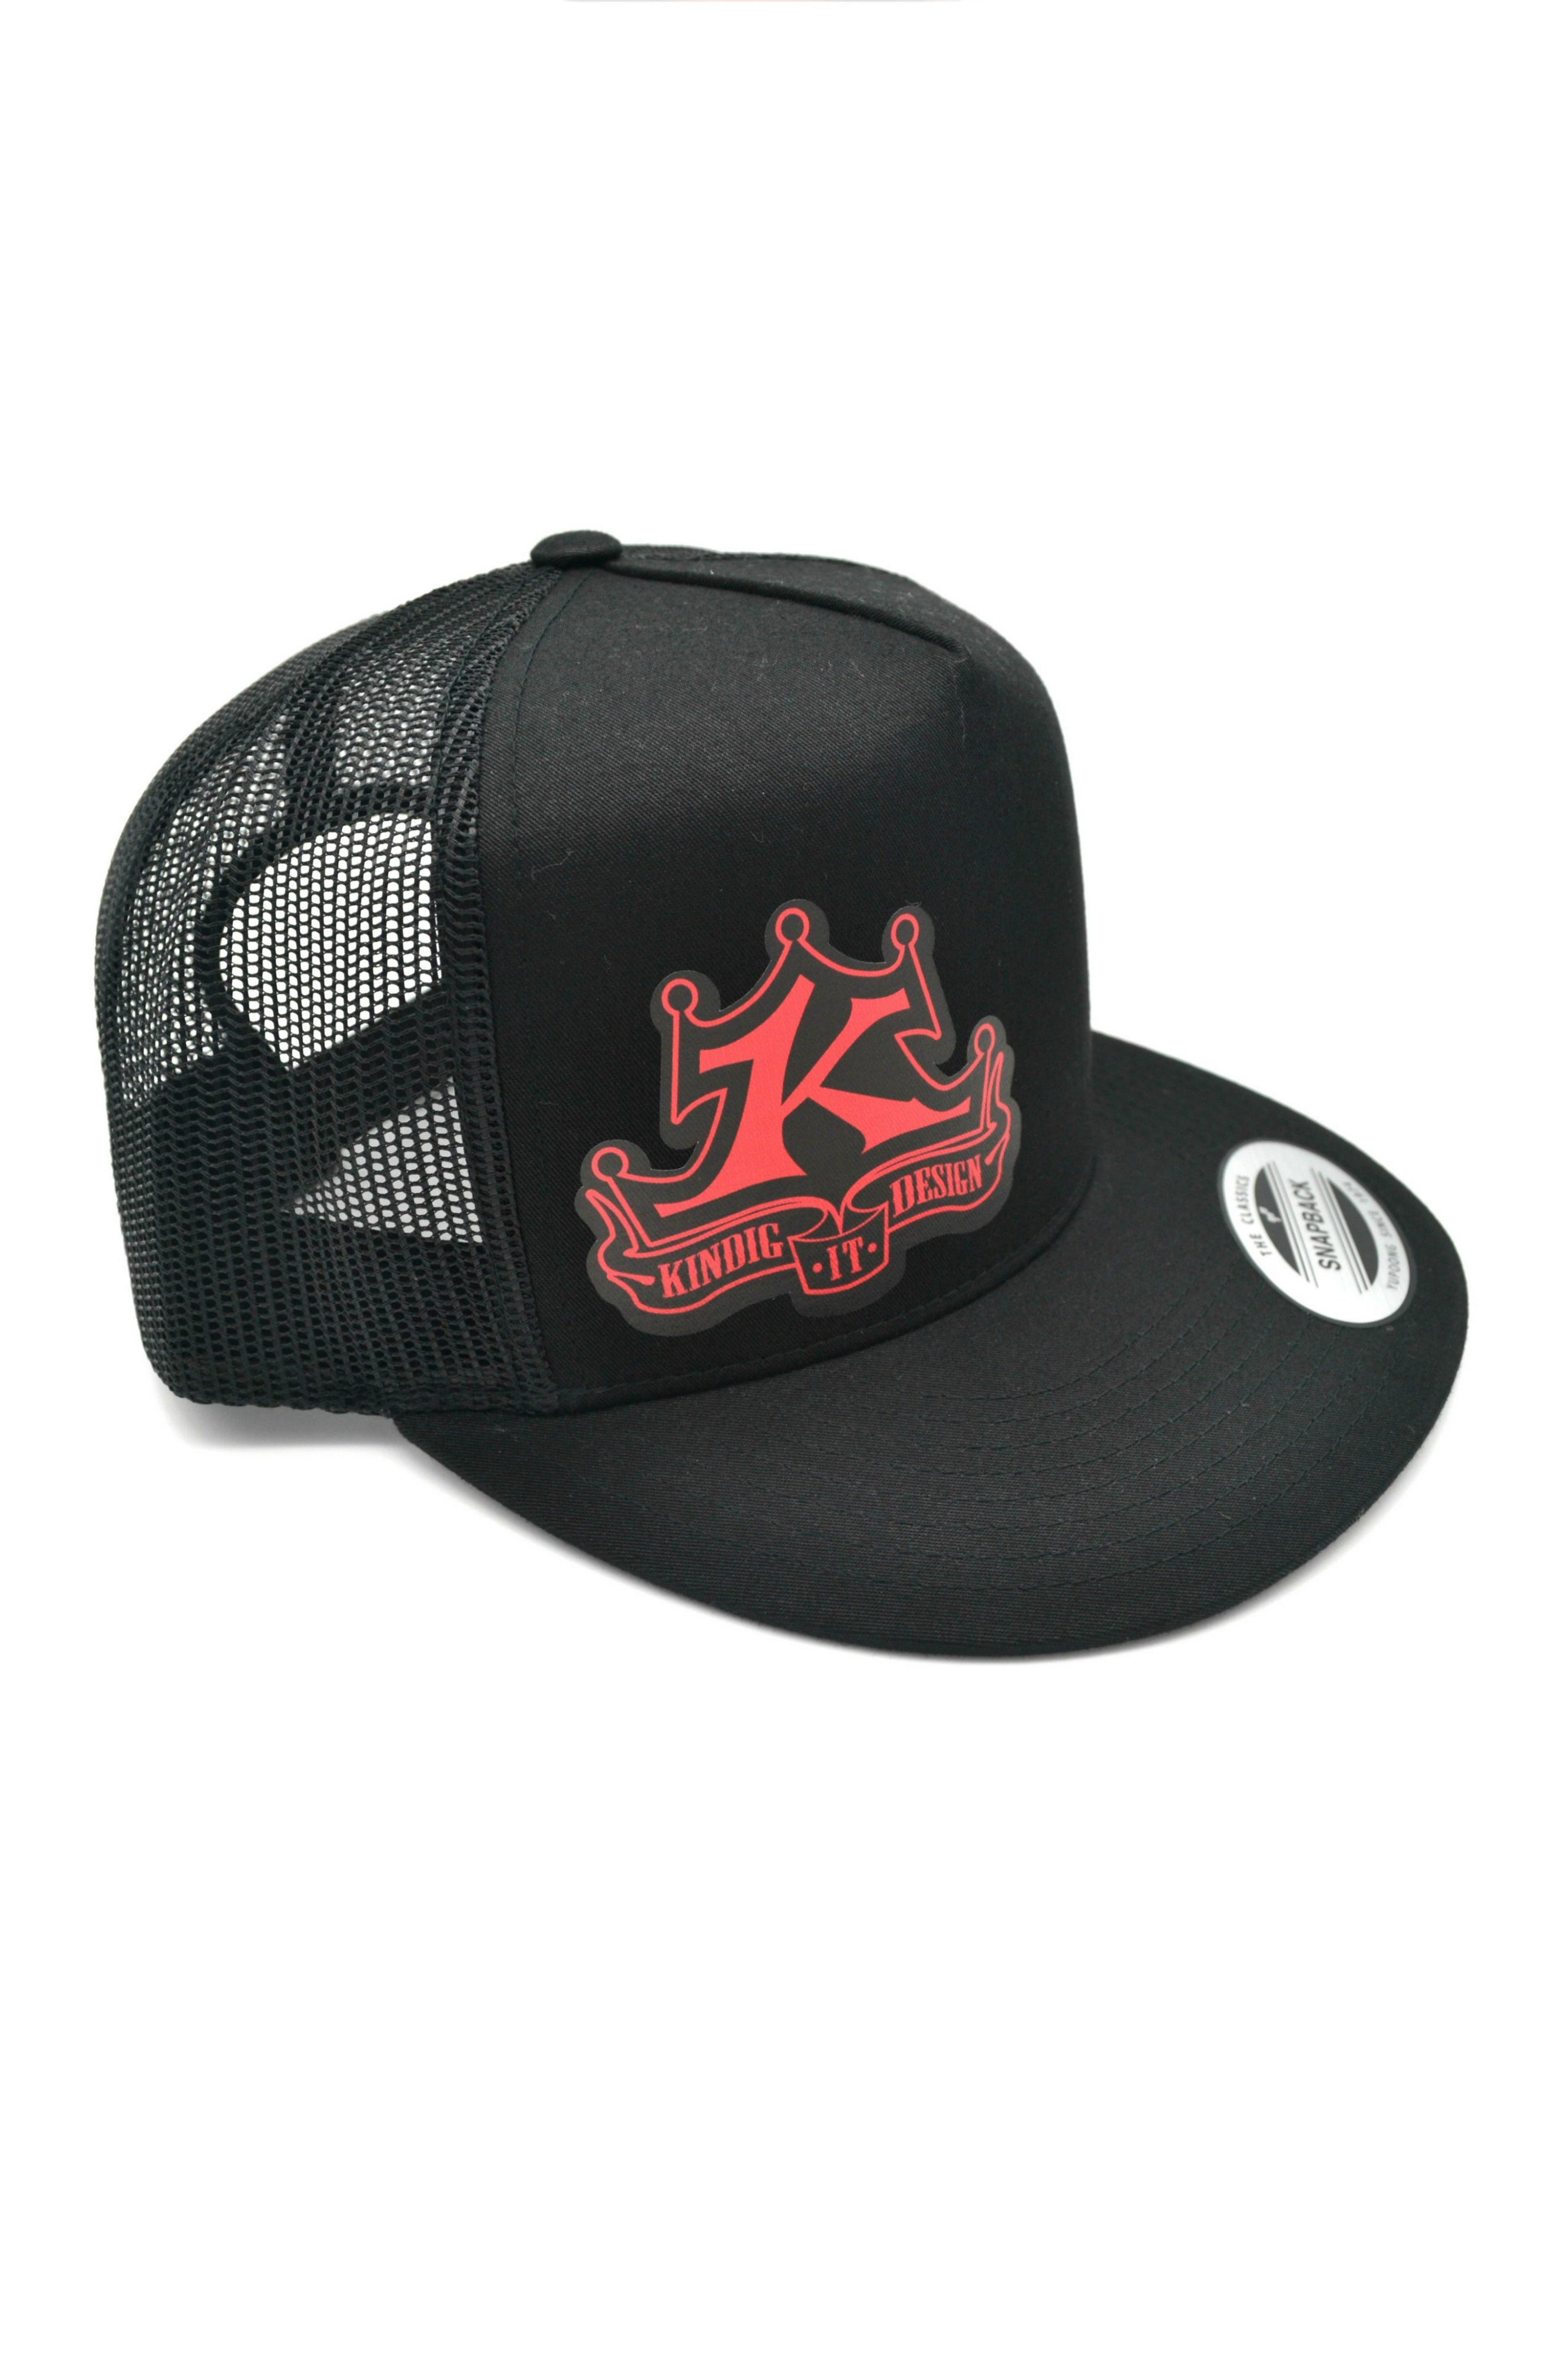 405614312ae Jordan Flex Fit Hat Black - Parchment N Lead